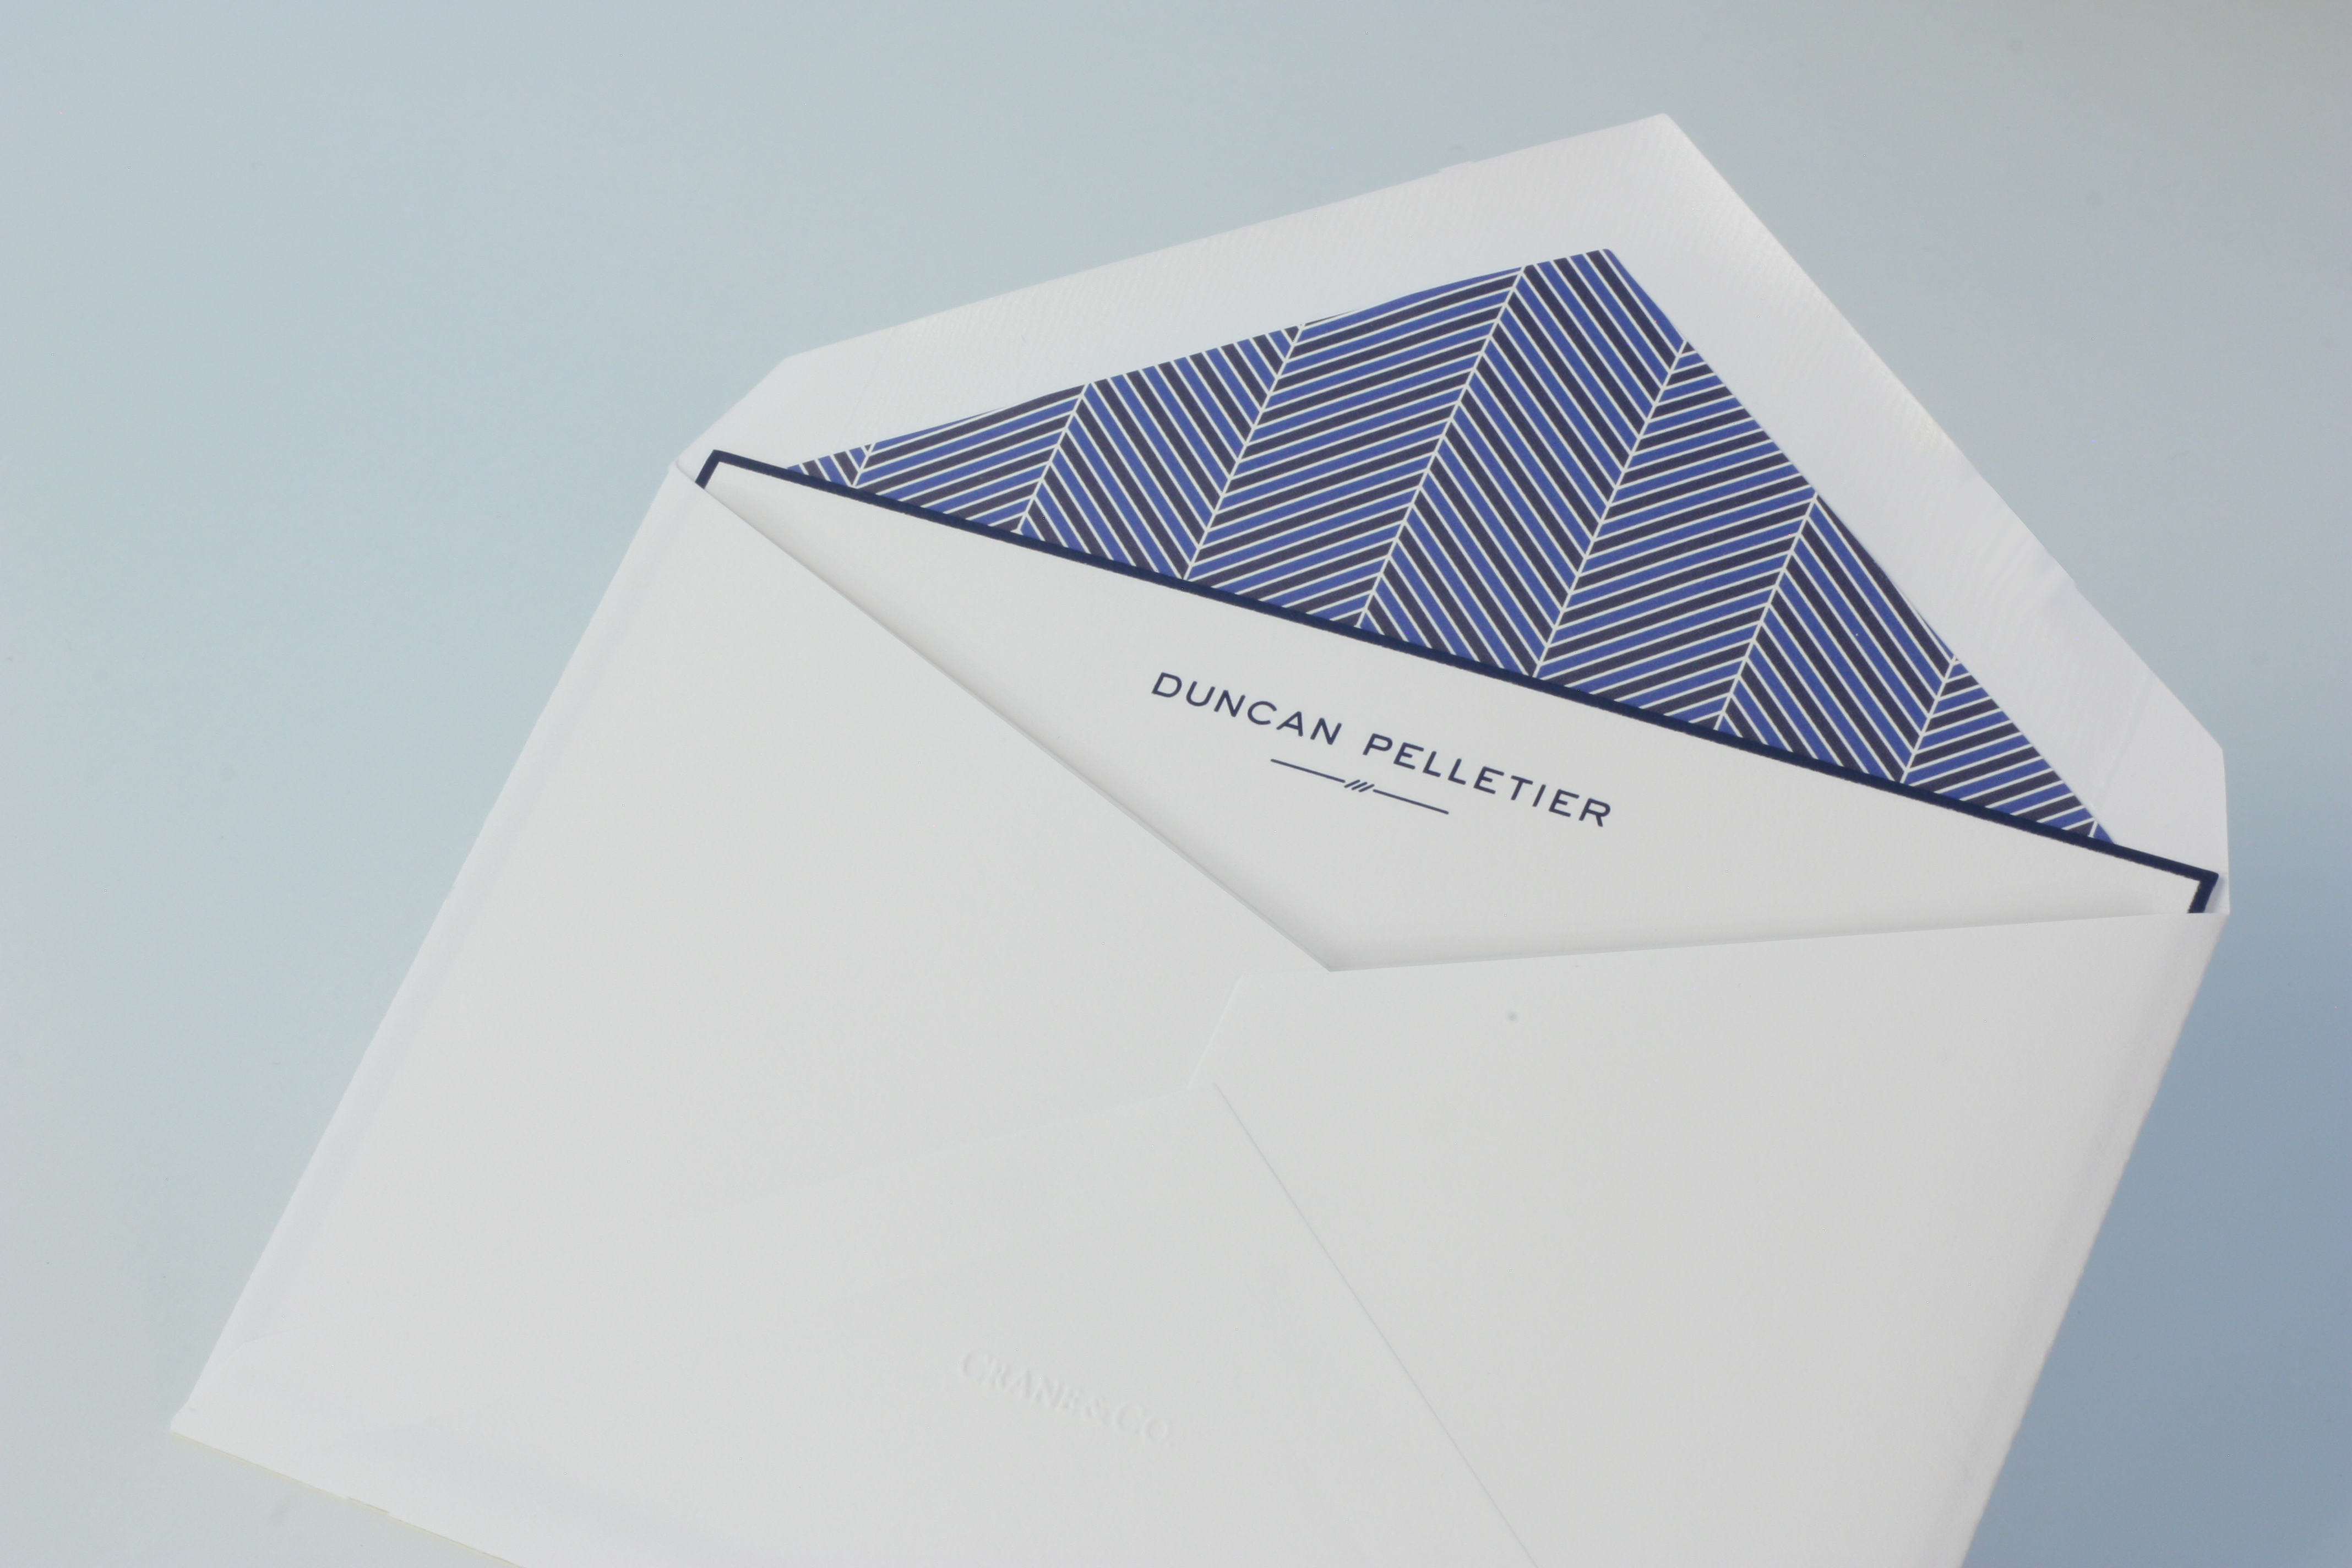 Personalized Stationery | Crane & Co.: The Blog